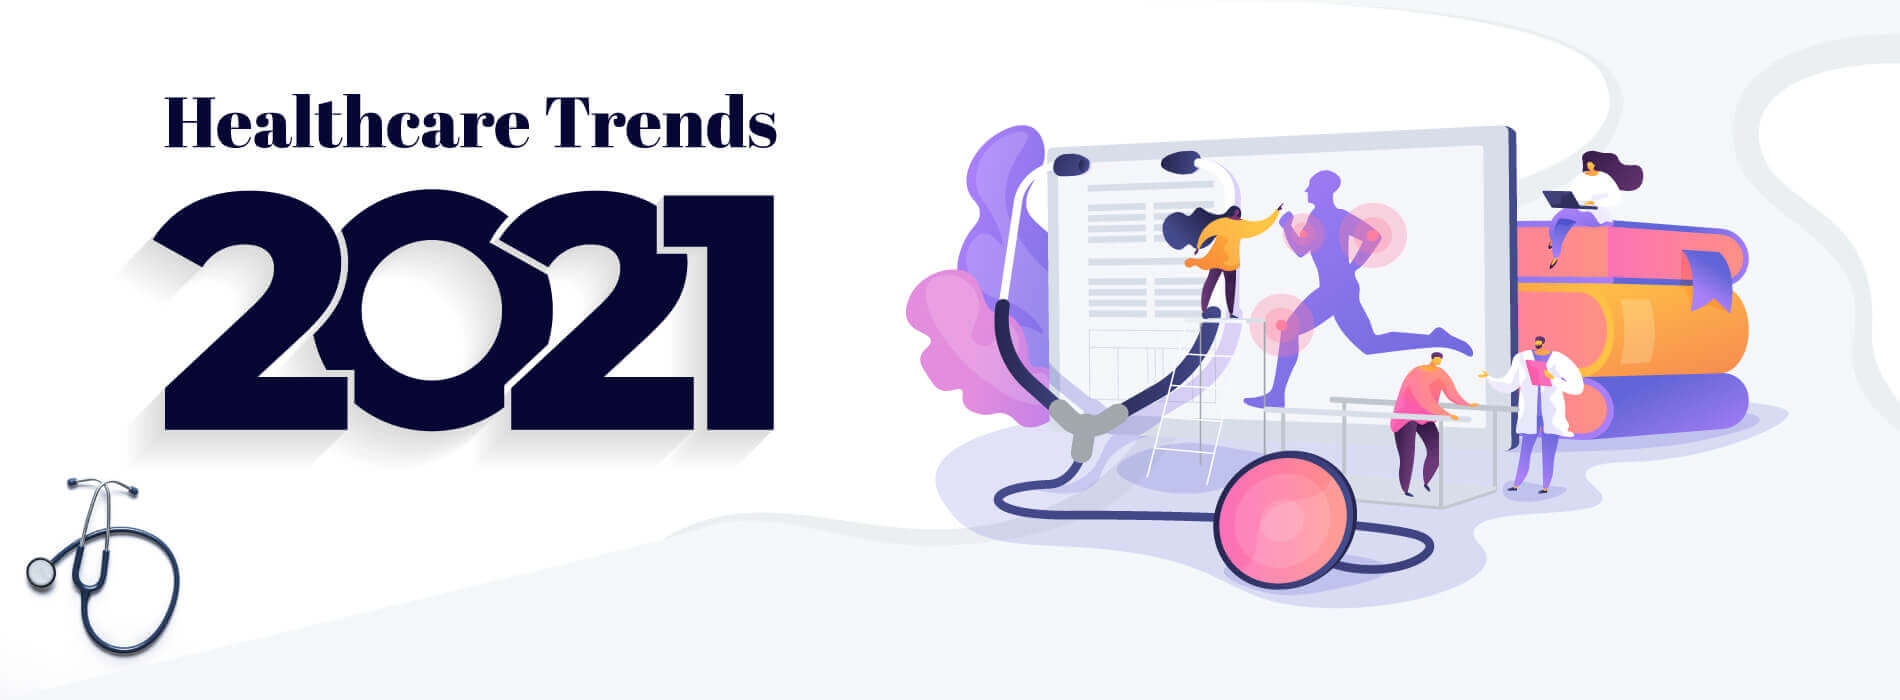 Top Healthcare Trends to Watch In 2021